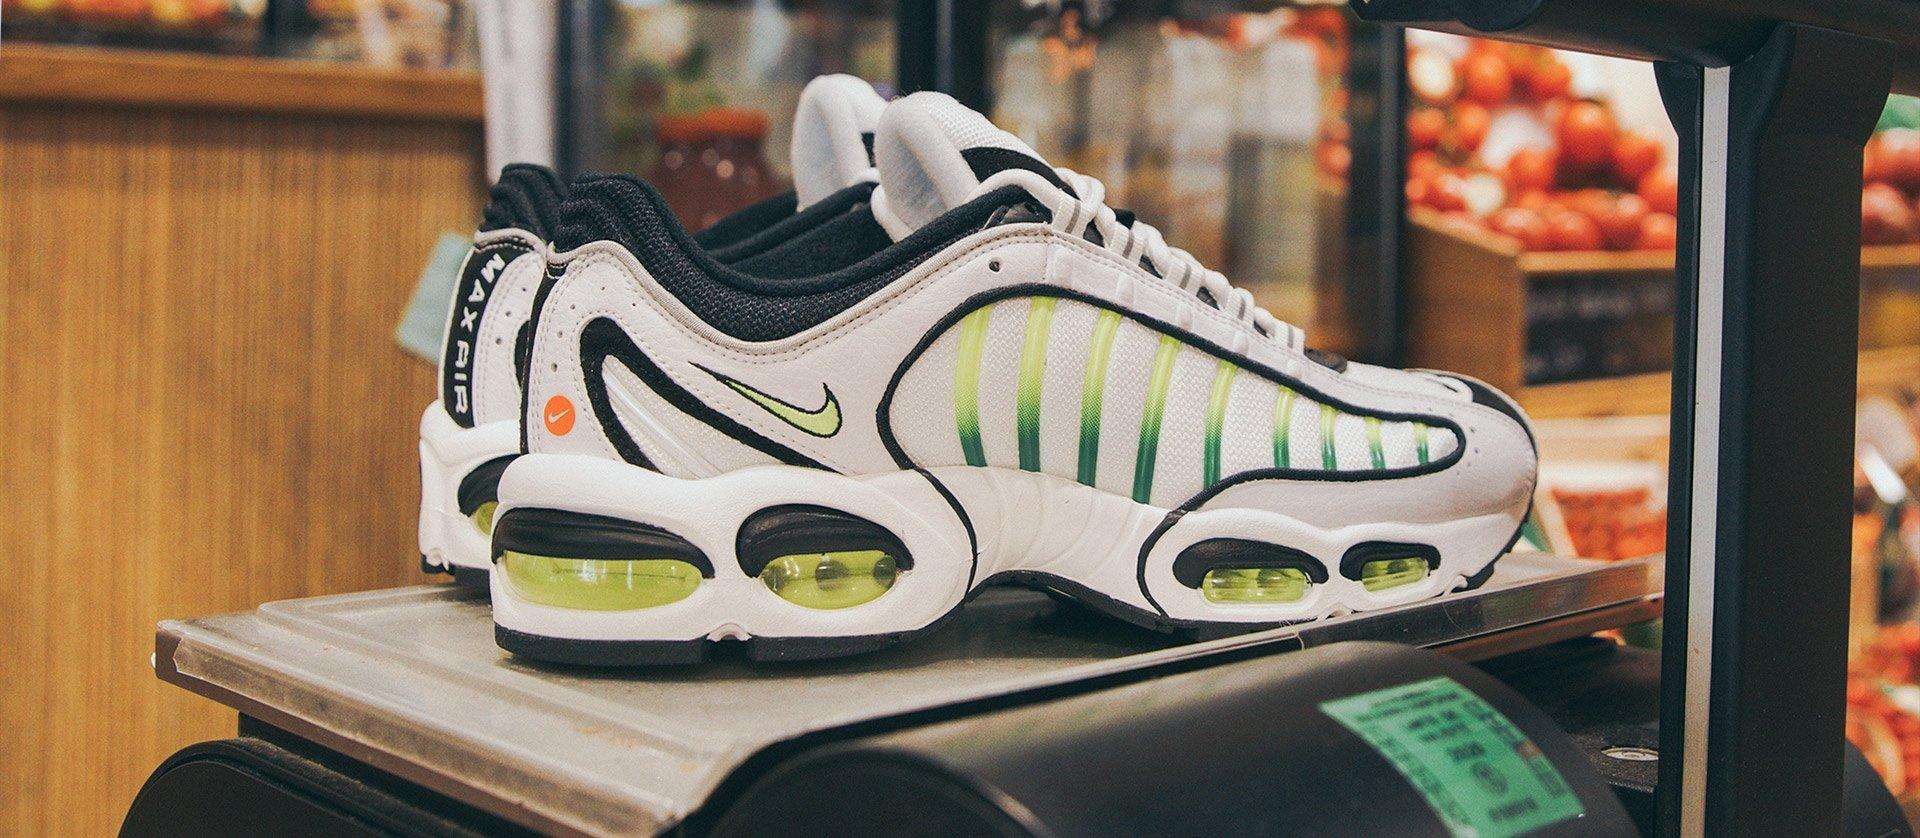 quality design 1fb55 4463b Nike Air Max Tailwind IV